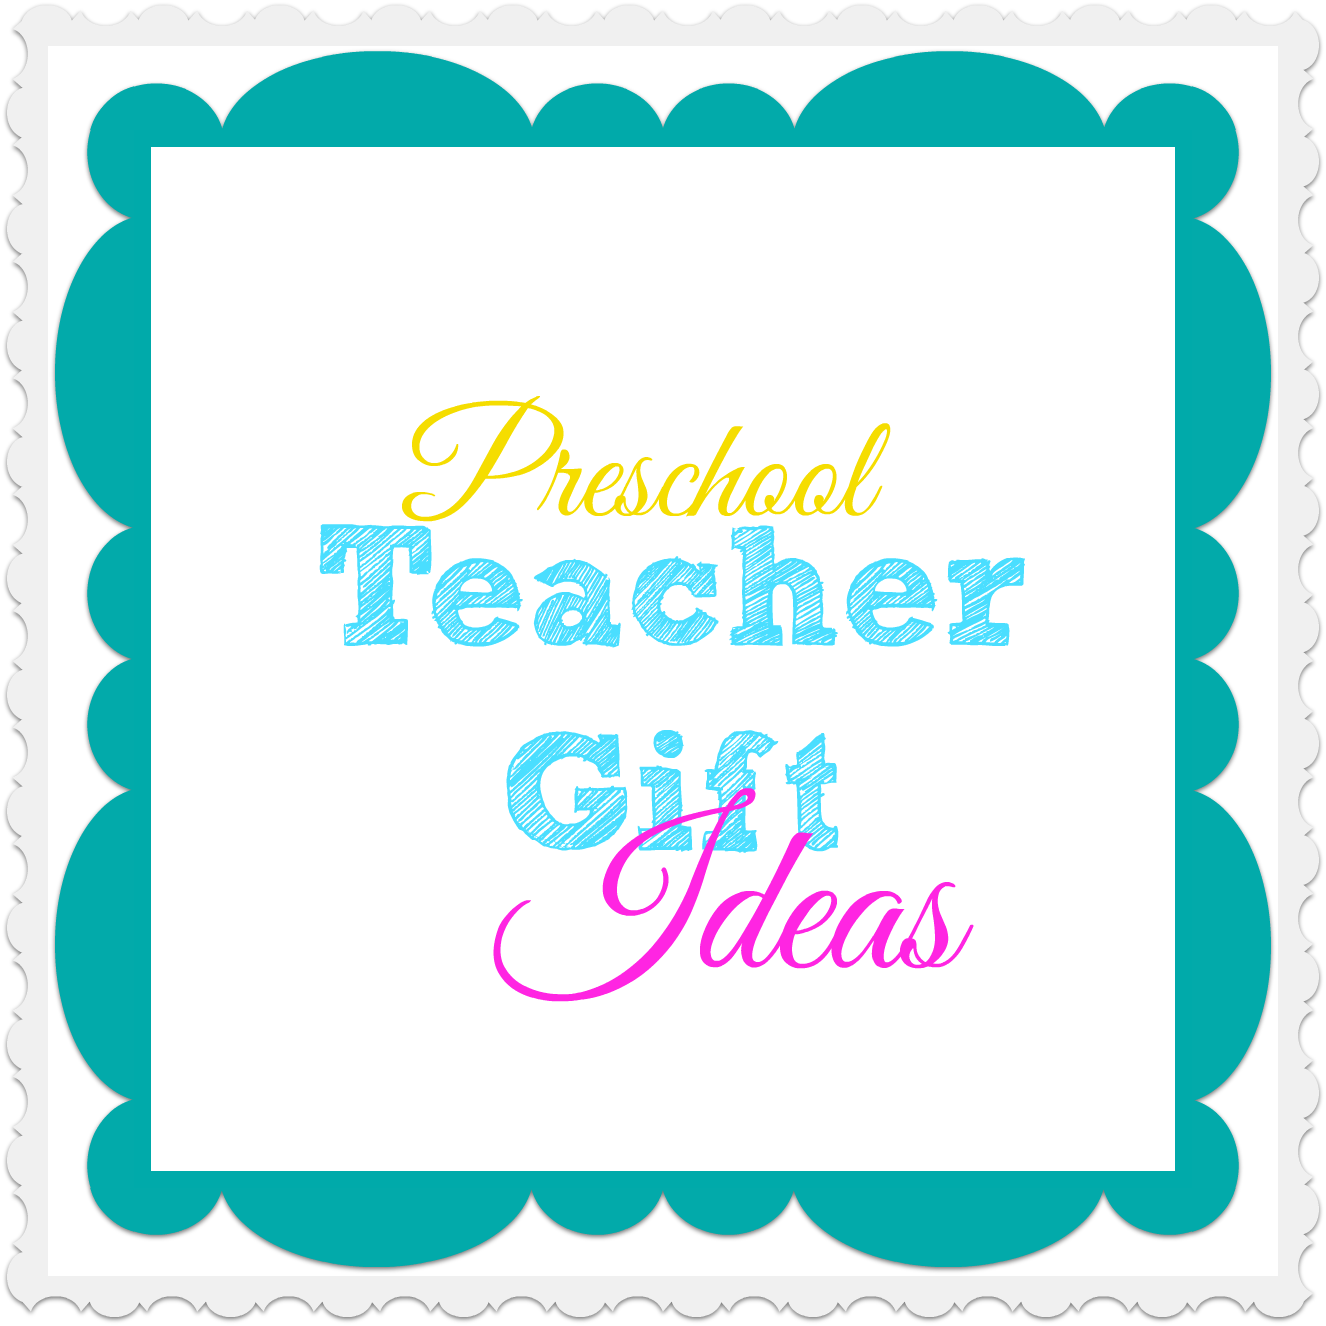 preschool teacher gift ideas homemade and store bought options